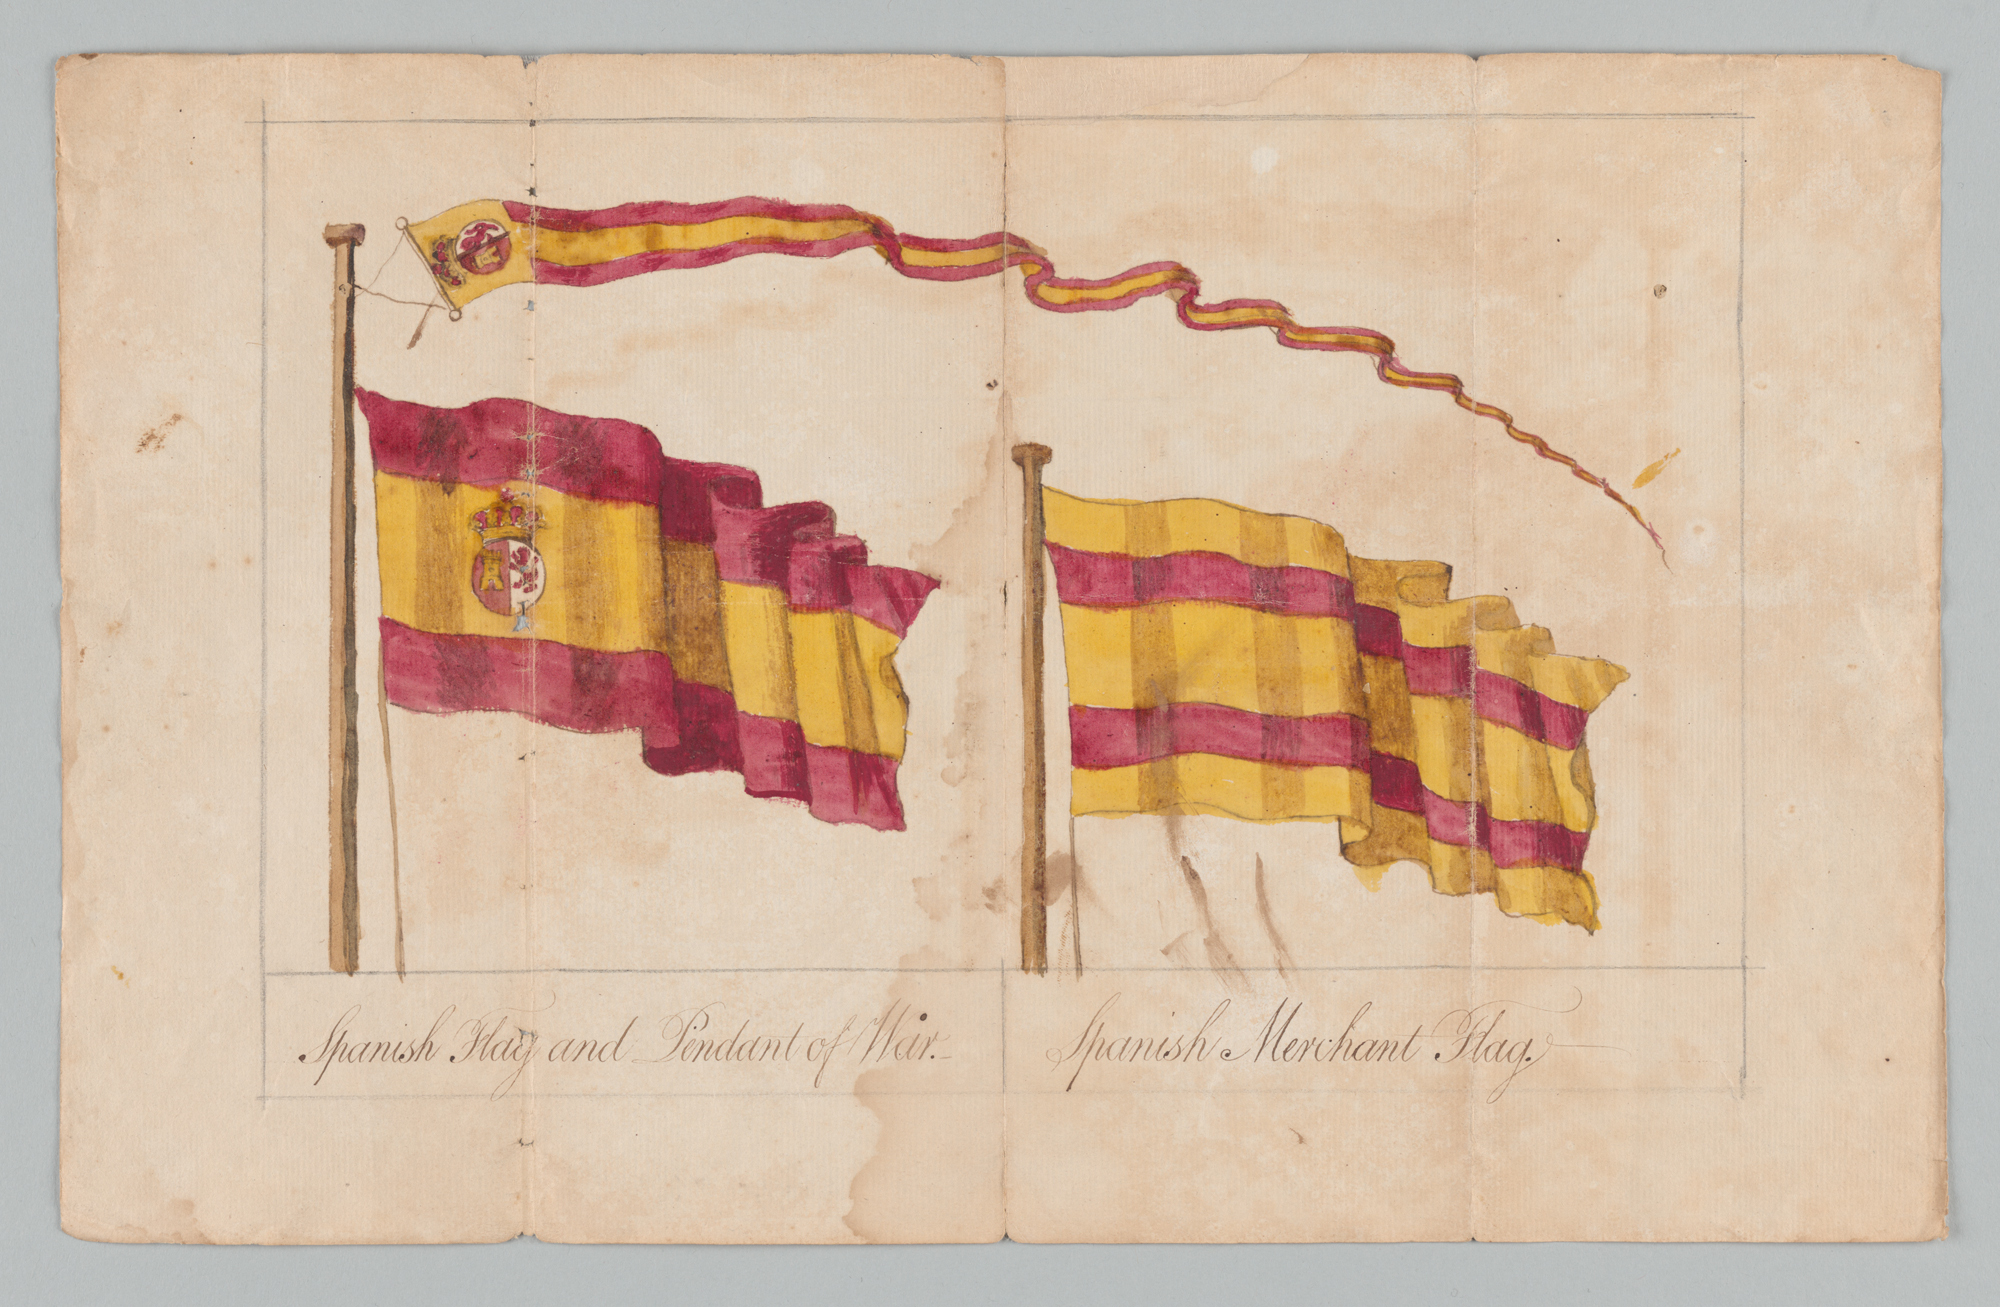 Spanish Flag and Pendant of War. Spanish Merchant Flag, front